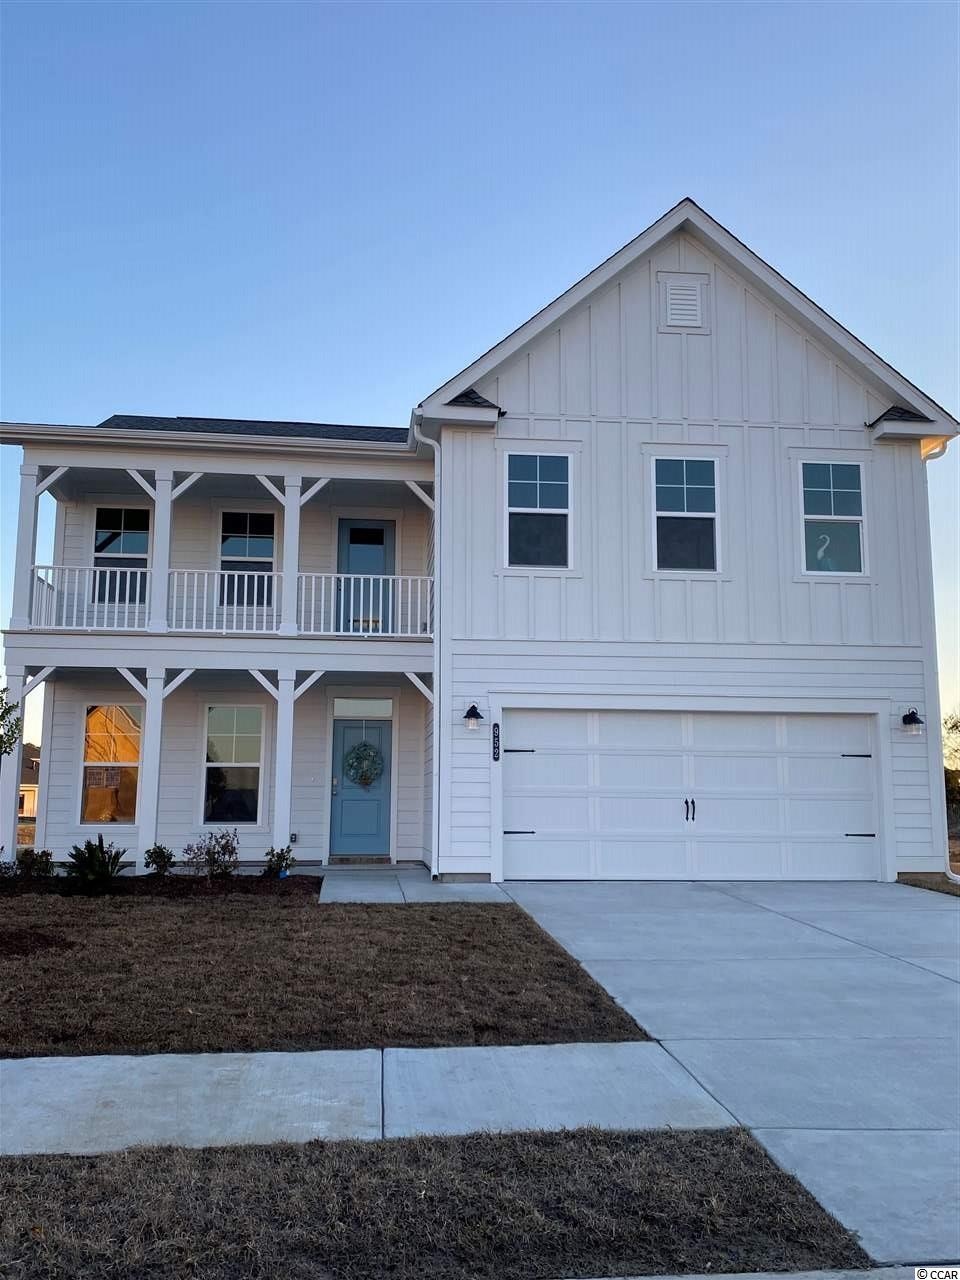 "This truly magnificent home is the Persimmon model. This 4 bedroom 3.5 bathroom home is a must see! Upon entering the foyer you will first notice the gorgeous shadow boxing trim and the spacious study with french doors. As you pass the 1/2 bathroom in the hallway you will enter into the Great room and be in awe of the 17' ceilings. Not to be outdone, this home will feature the gourmet kitchen with the upgraded 42"" white cabinets, upgraded stainless steel appliances to include a gas cooktop, vent hood, wall oven and microwave. The Primary bedroom is on the first floor with the breathtaking tiled, zero entry, spa shower complete with rain head. Upstairs boasts 3 bedrooms, 2 full bathrooms, and a loft area that can double as a second living area. Outside this home includes covered front and back porches, irrigation, gutters, and not to mention Color Plus James Hardie Hardie Plank siding. All of our homes are ENERGY STAR CERTIFIED which means you will save $$$$ each and every month. If you need financing our Mortgage Choice program is changing the industry and lets you be in control of which lender you choose. See agent for financing incentives. Pictures are from similar homes built previously as well as the furnished model home and not of the actual home being built."